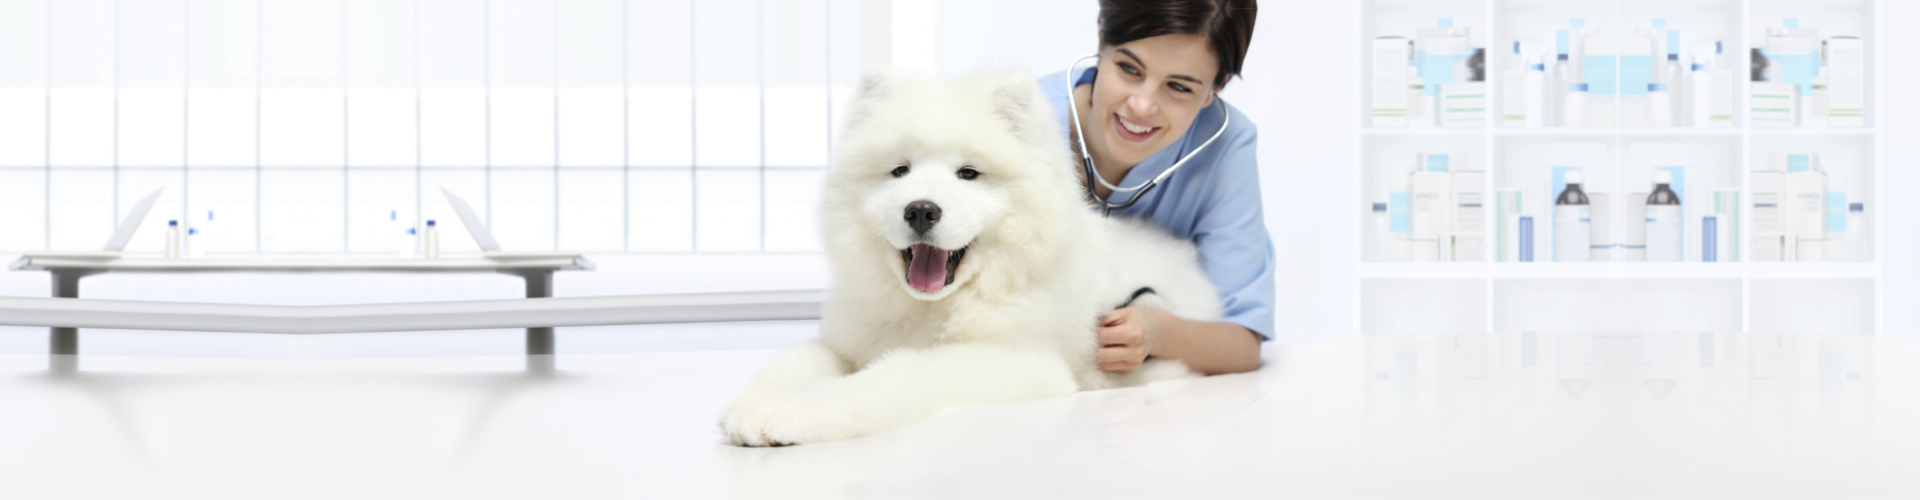 dog veterinary examination smiling Veterinarian with stethoscope listening on table in vet clinic